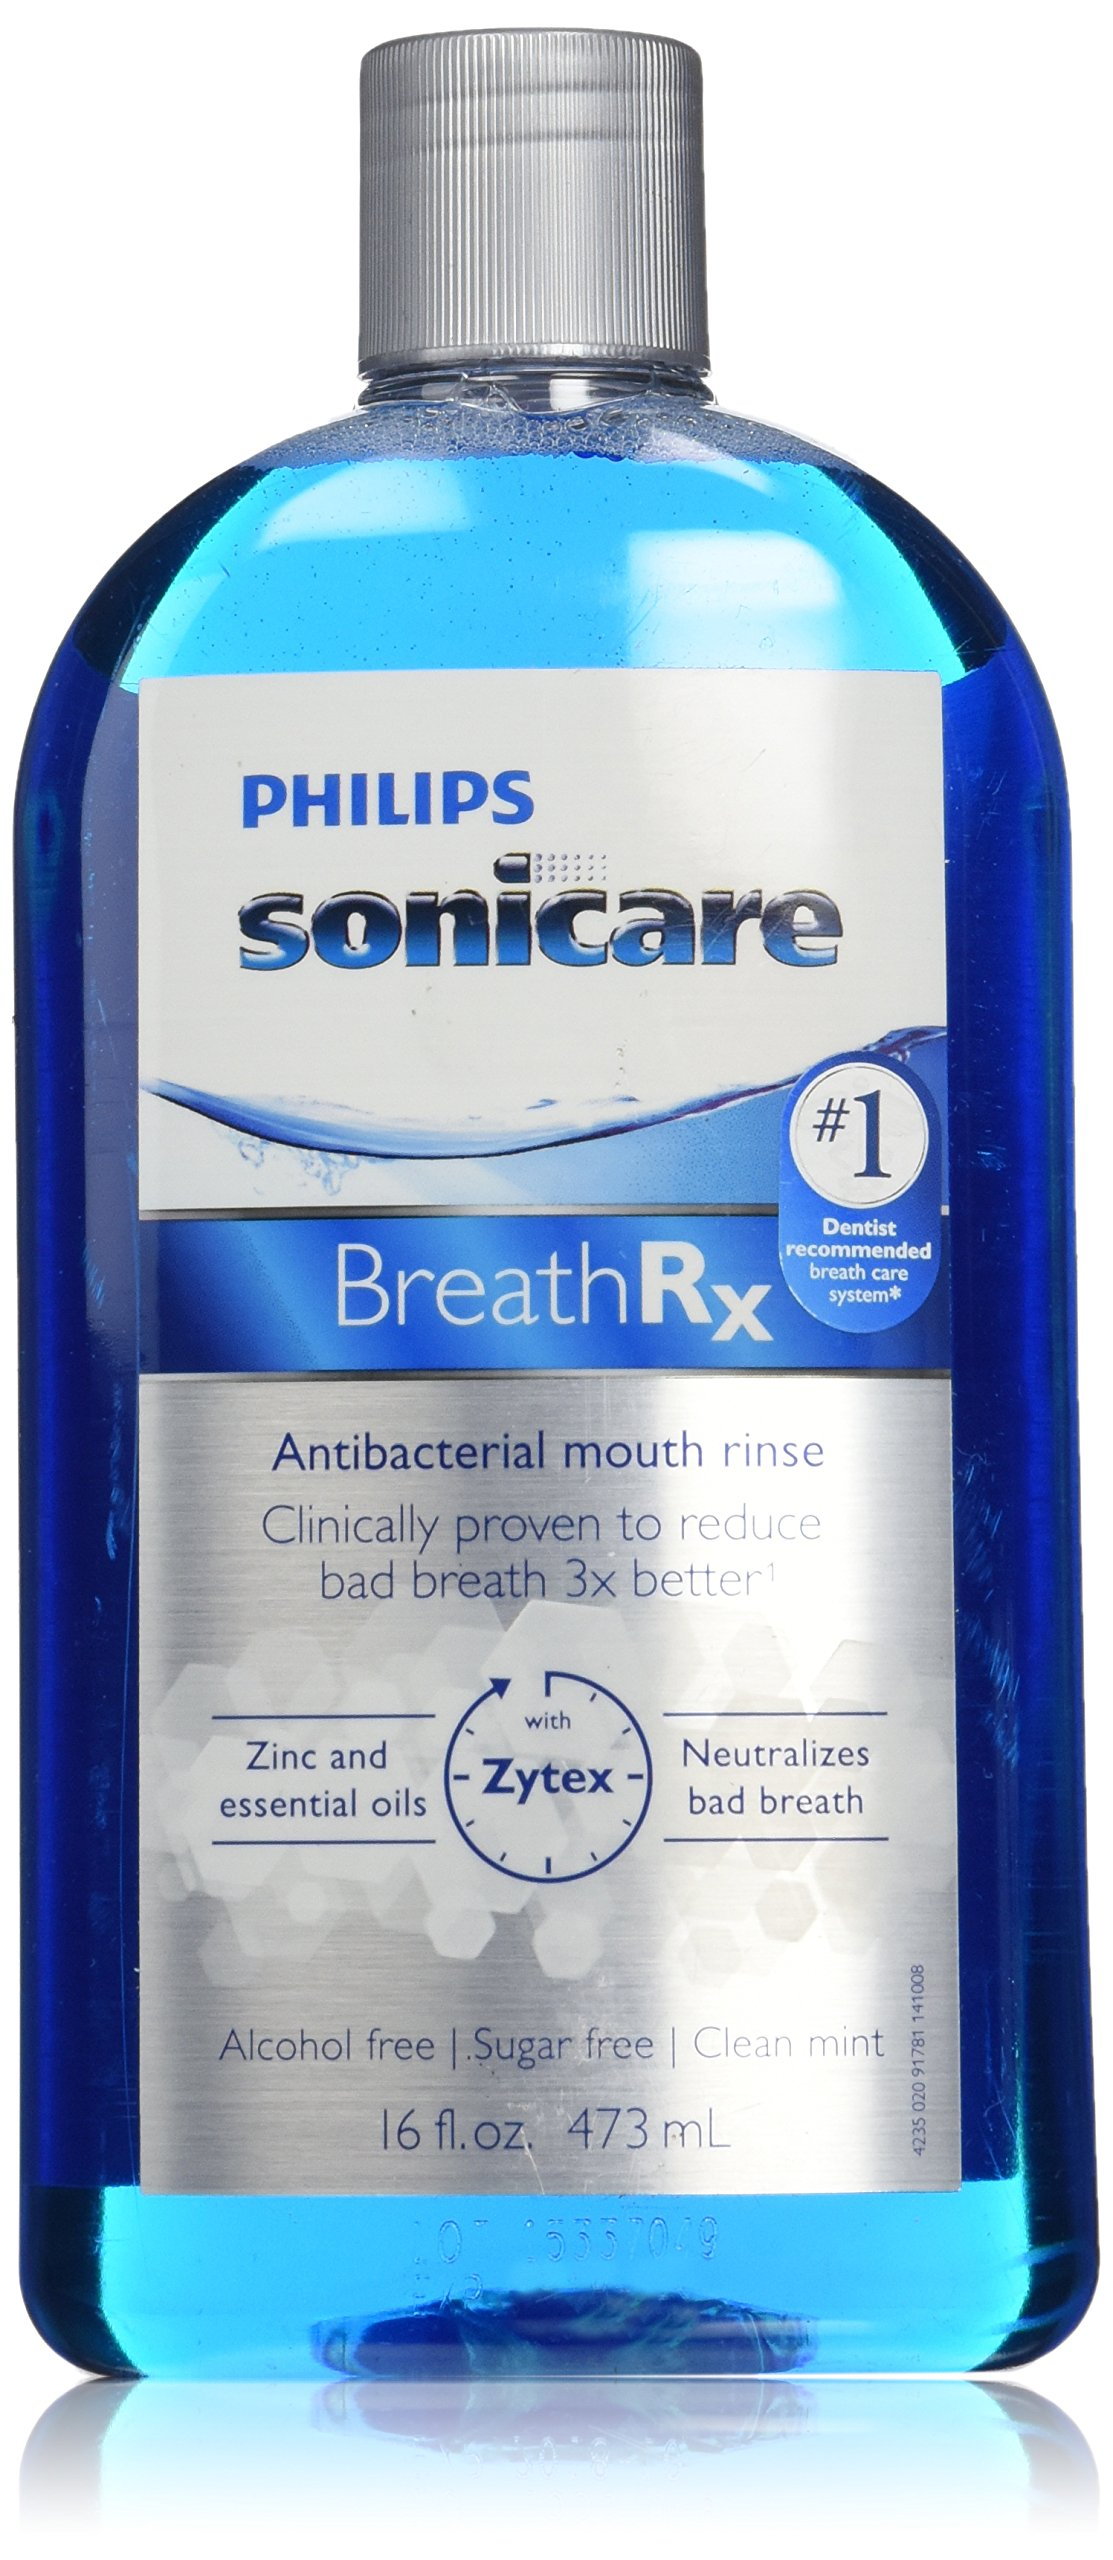 Philips Sonicare Breathrx Antibacterial Mouth Rinse, 16 FL. OZ.